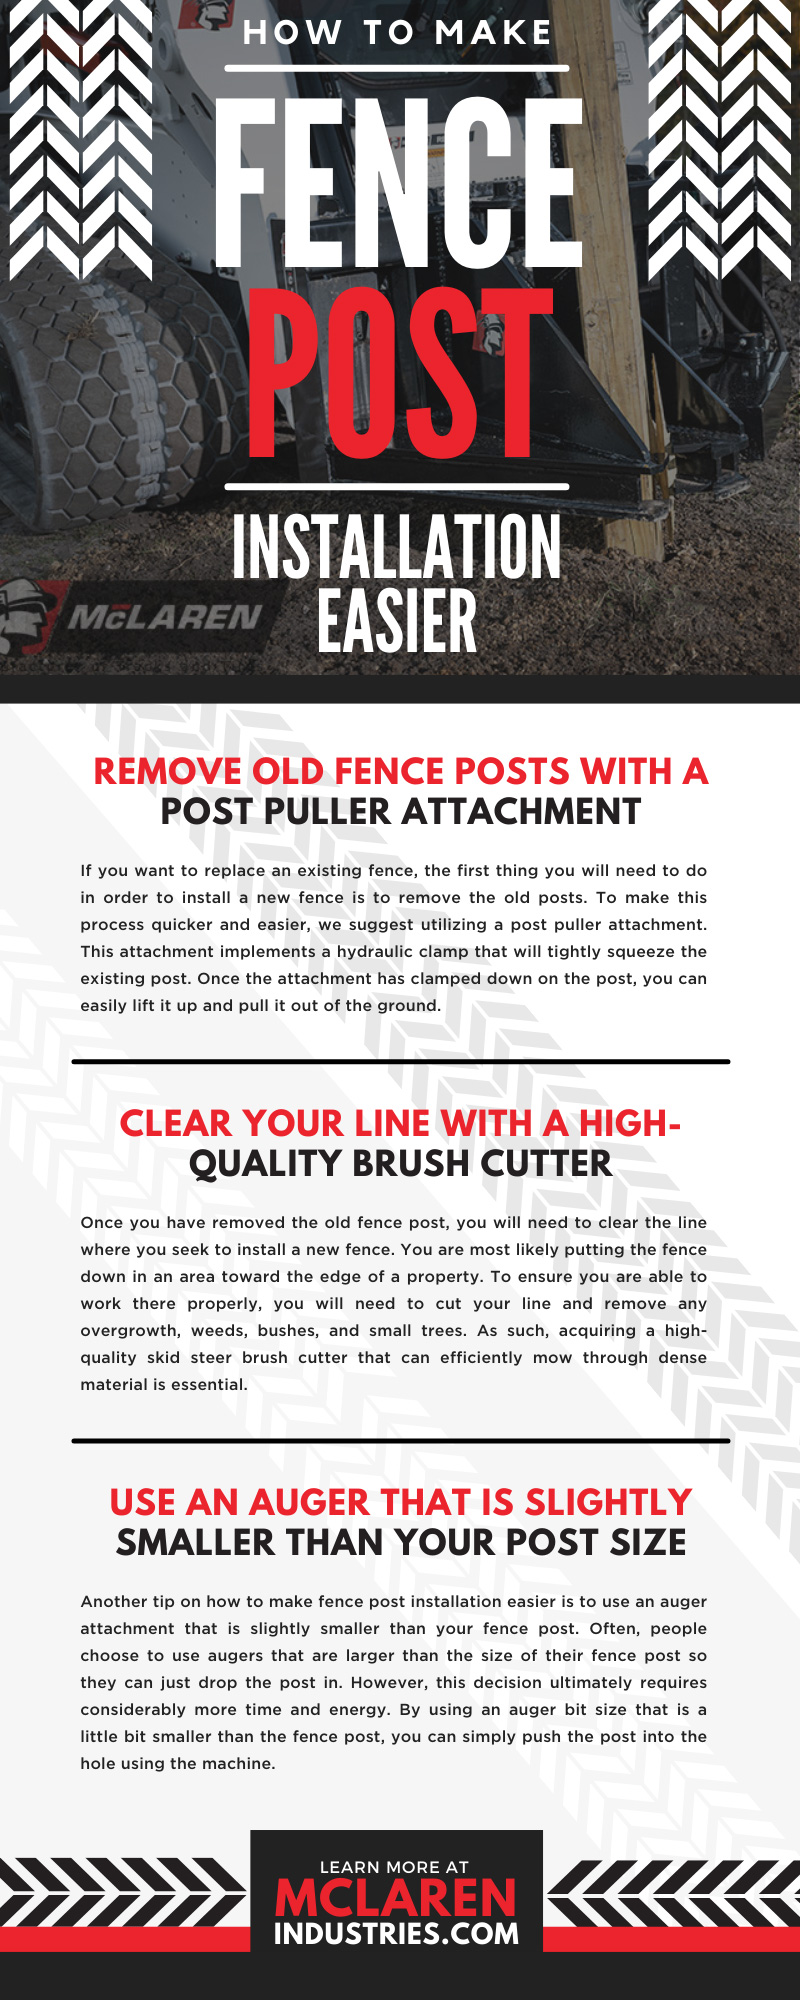 How To Make Fence Post Installation Easier